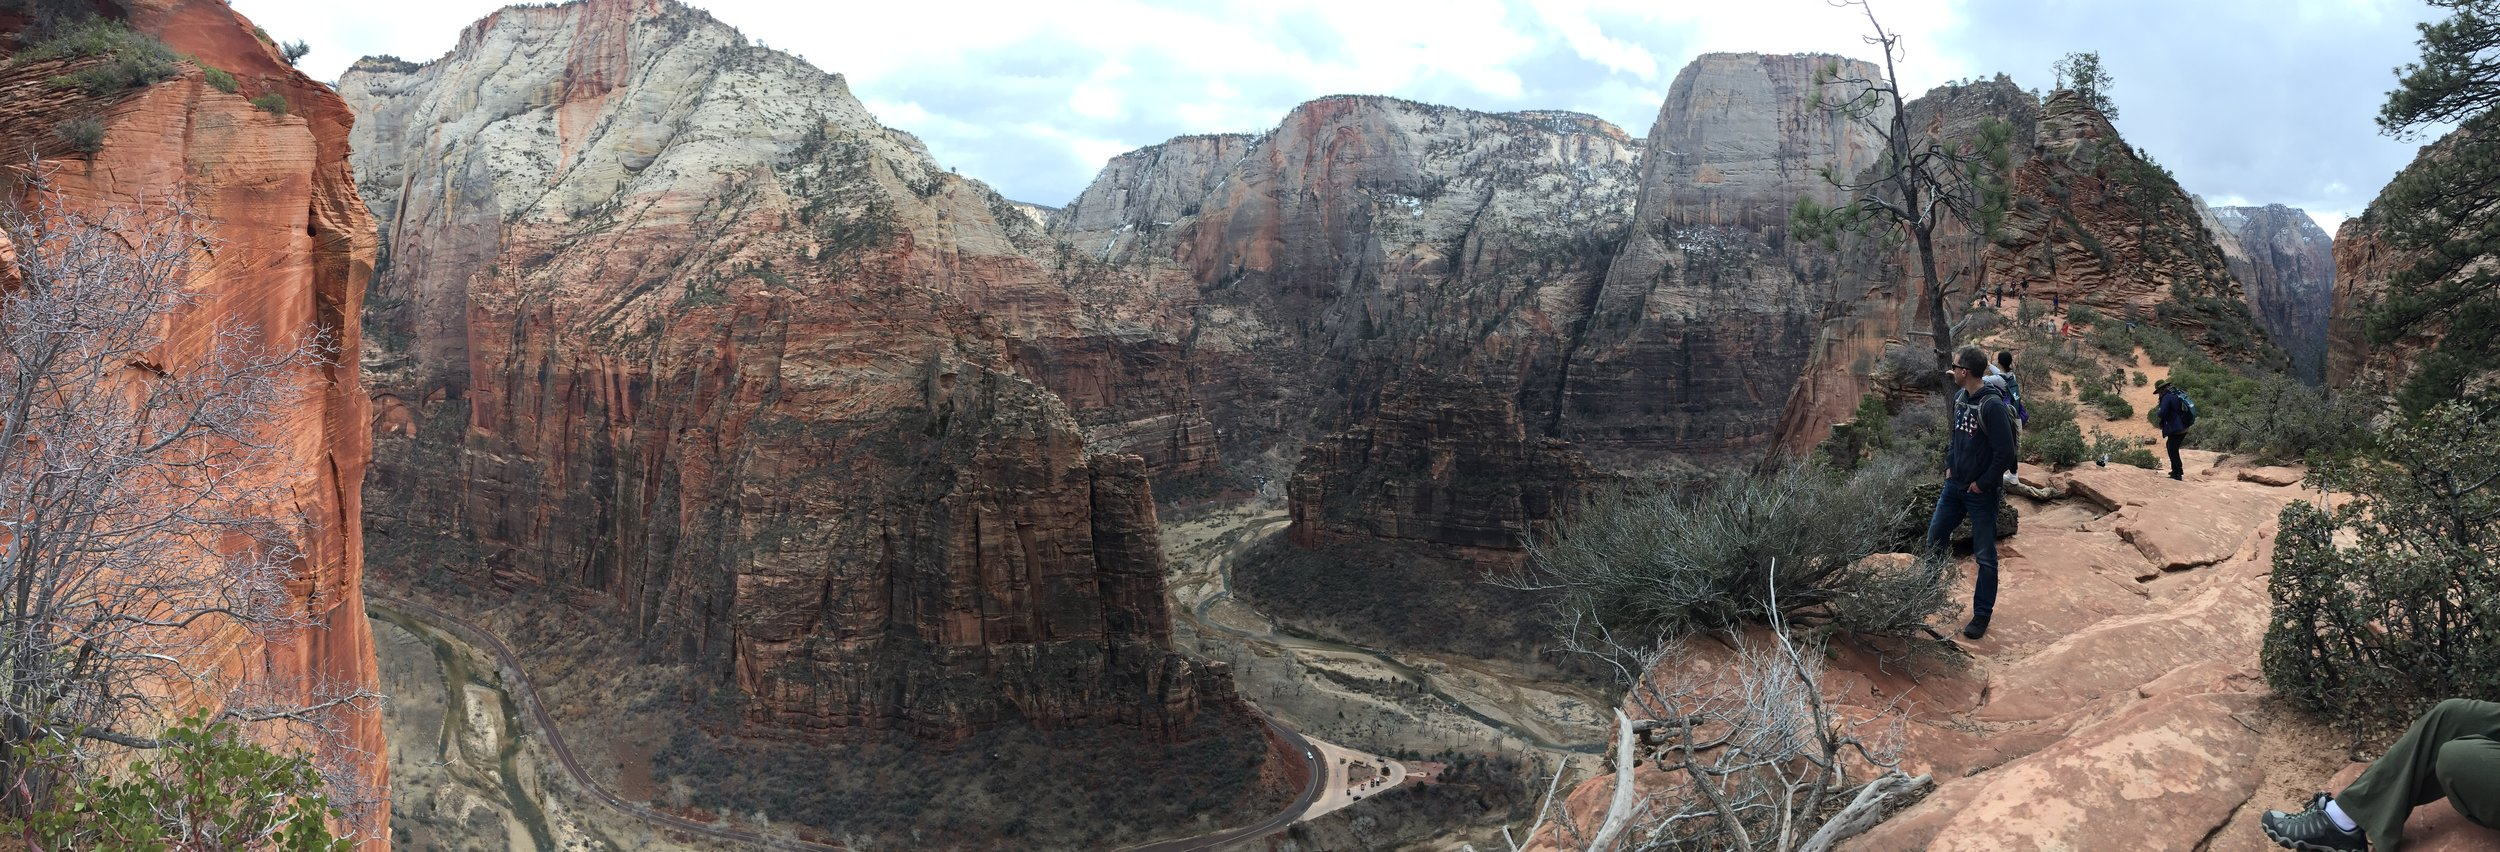 Halfway up Angels Landing. Greg takes in the breathtaking view, moments before we oblivious to the fact that he's about to meet the love of his life.